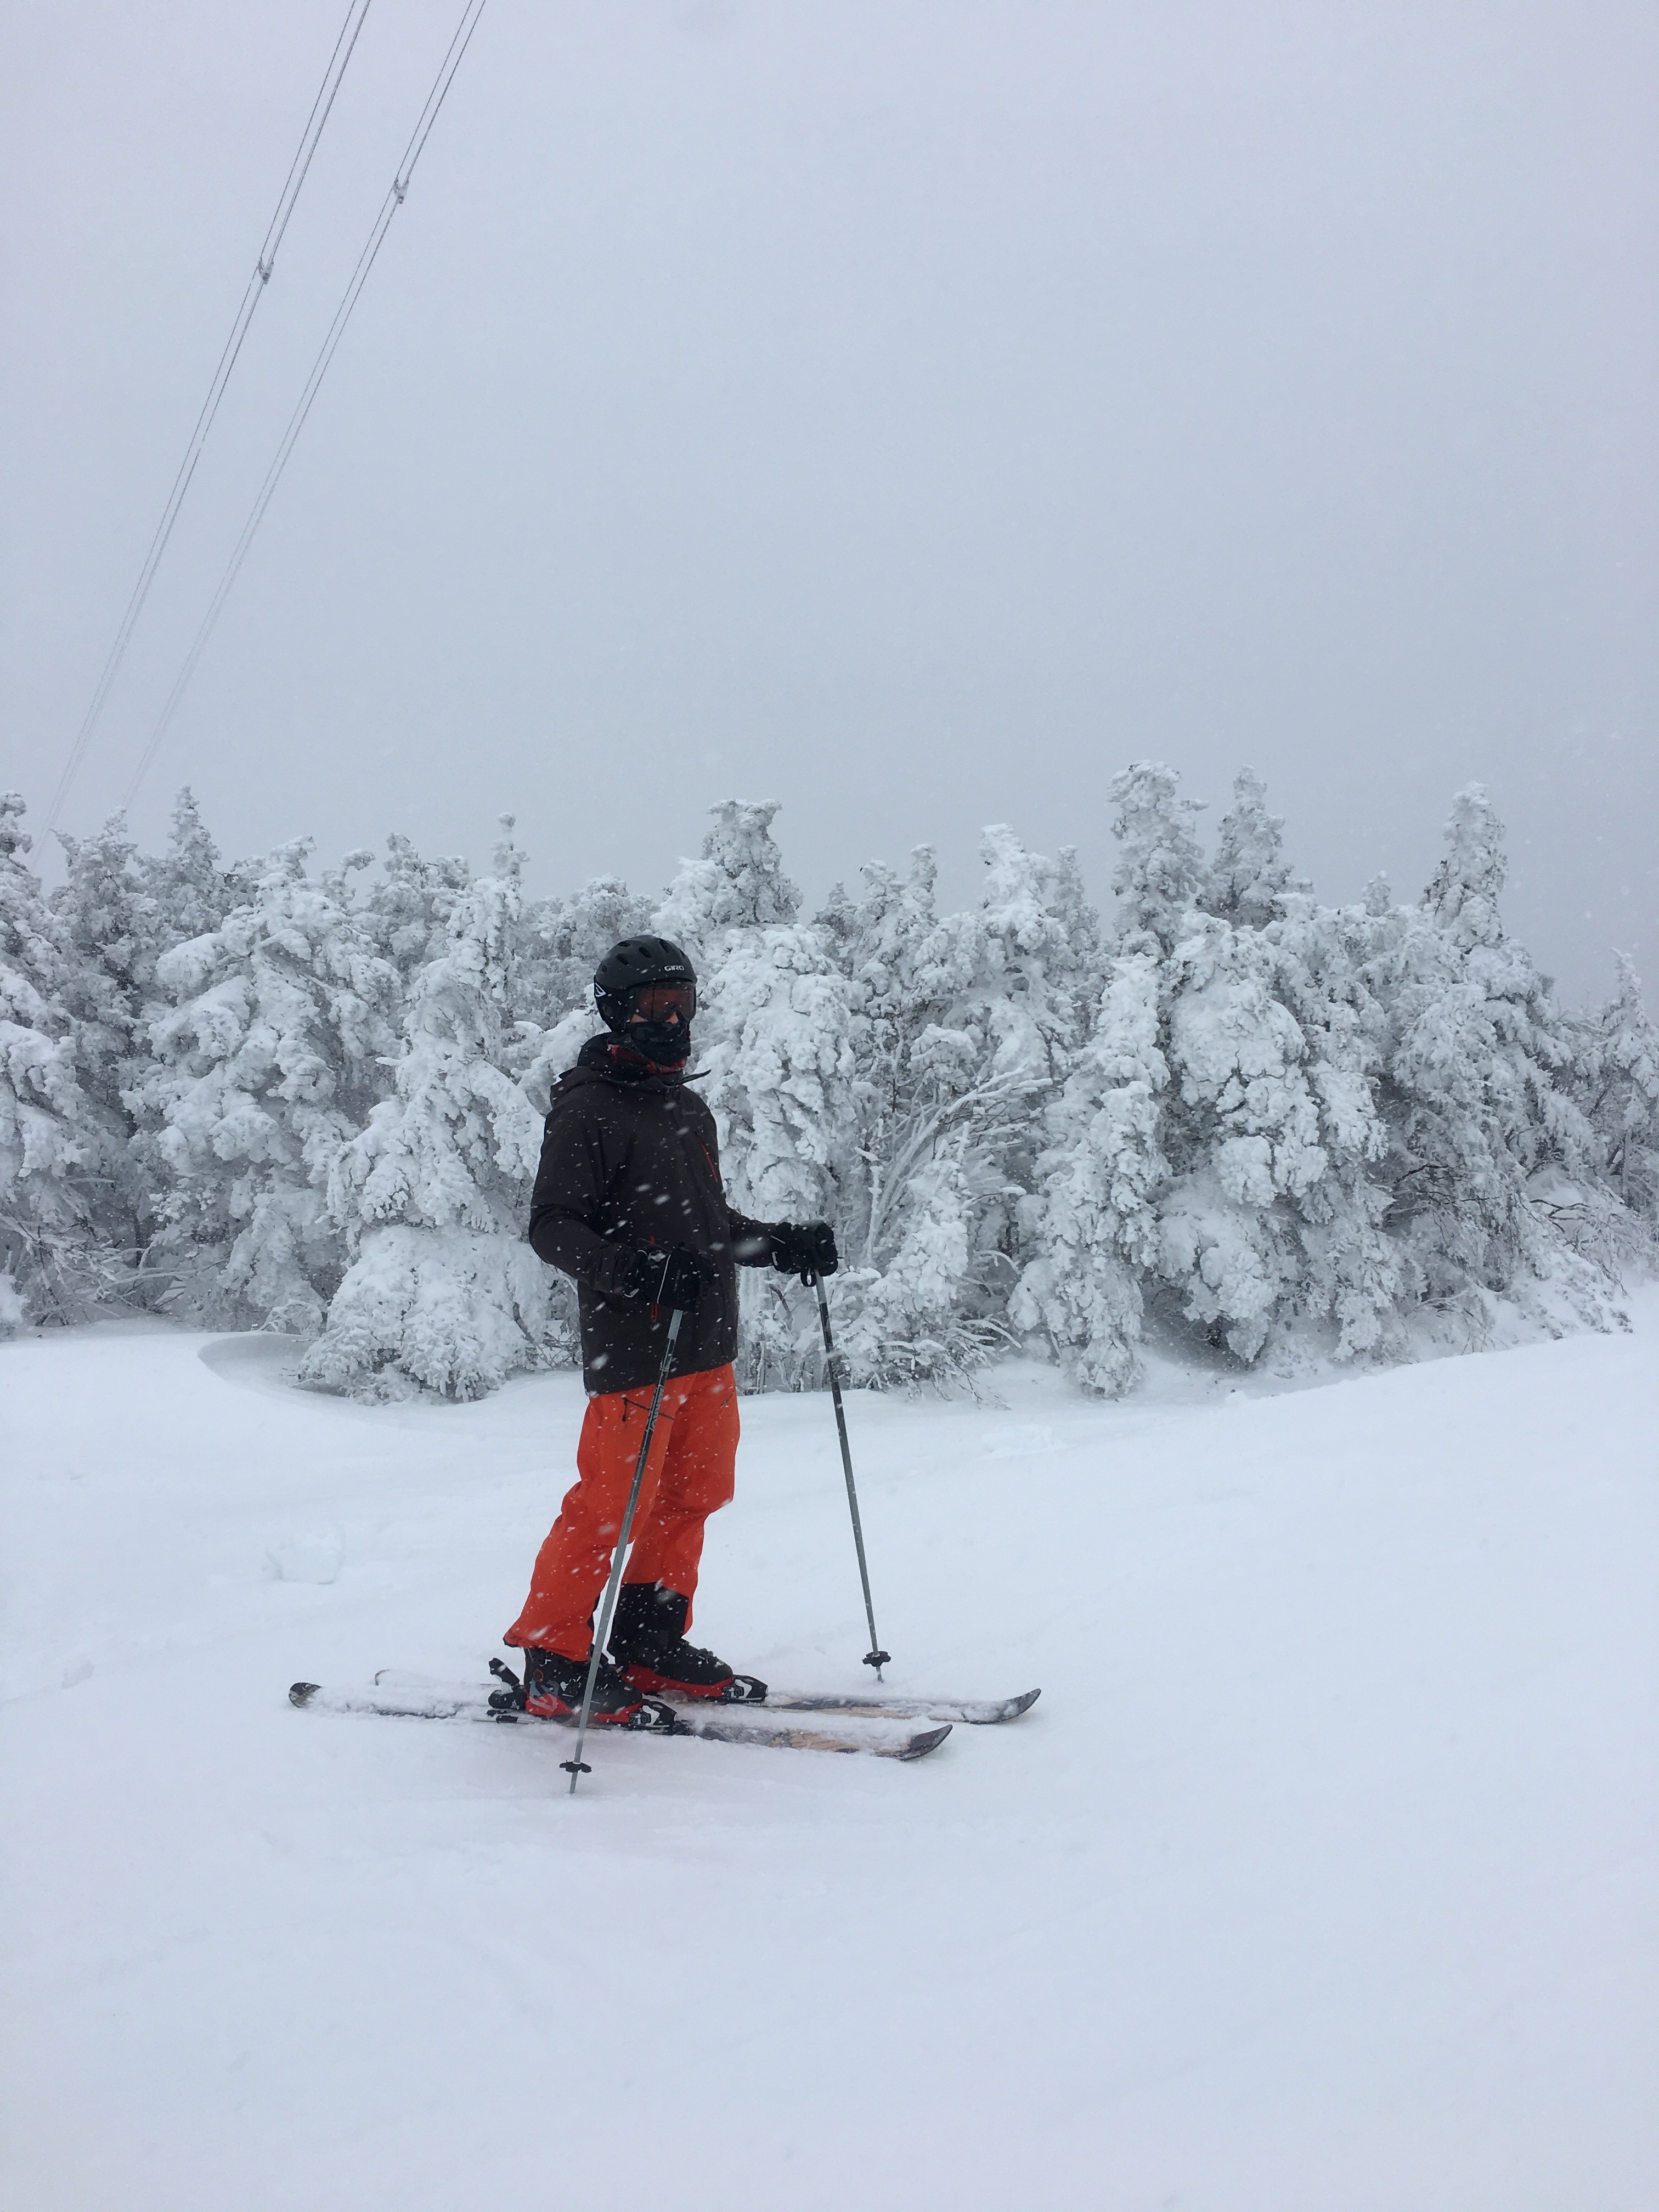 Devin Skiing